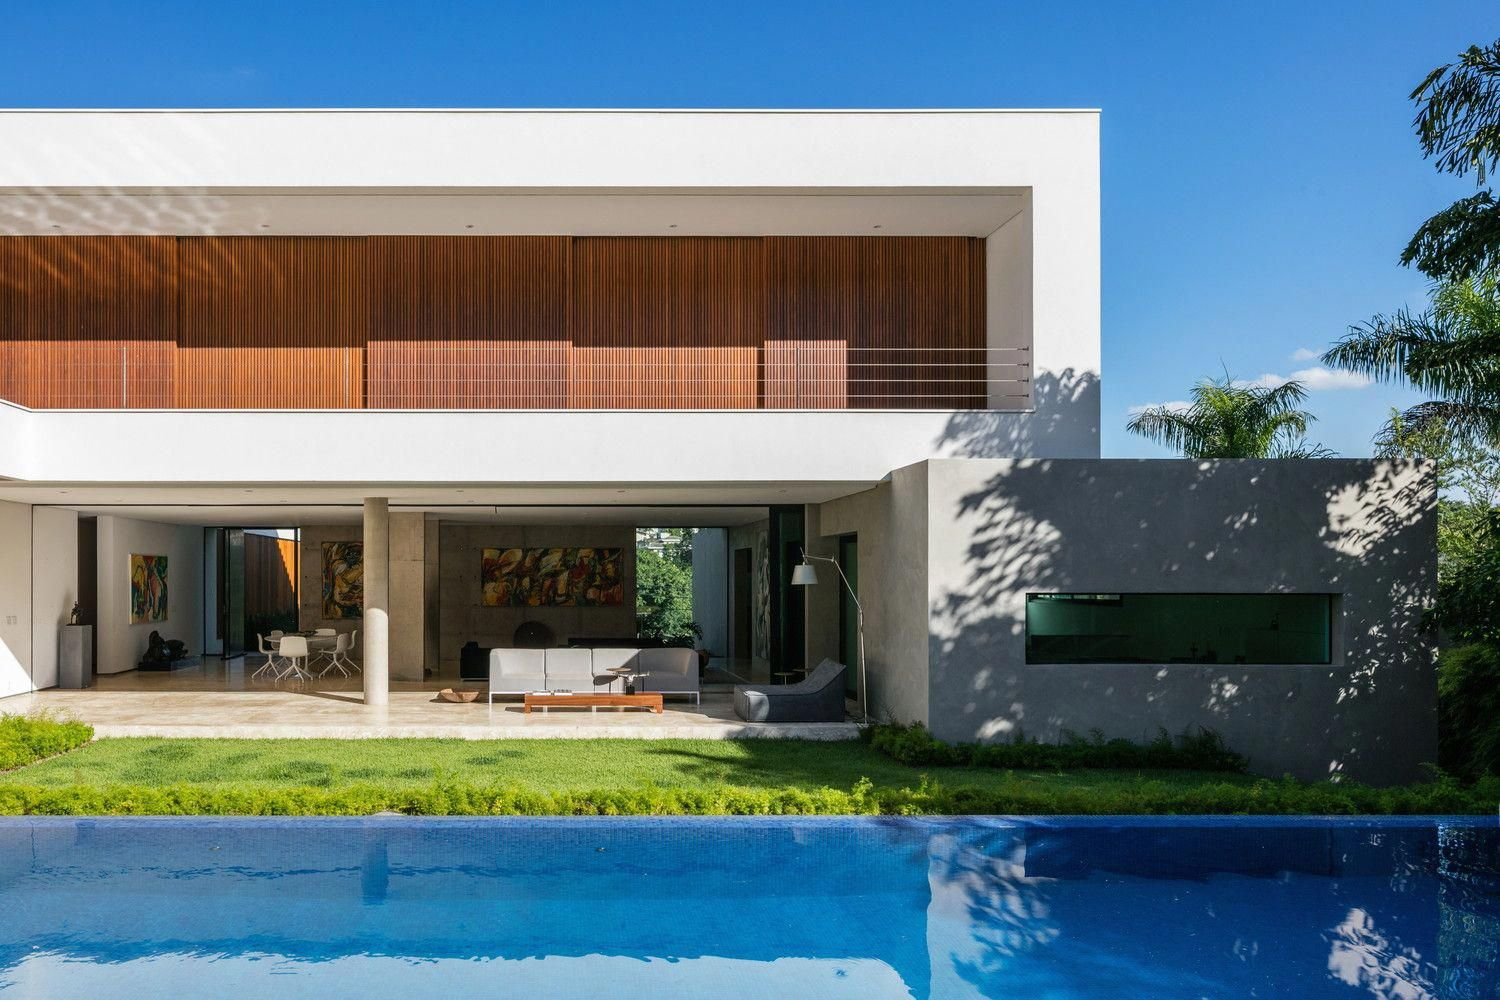 Residence design with pool and garden photography nelson kon architect padovani arquitetos associados location brazil unique artwork items also rh pinterest